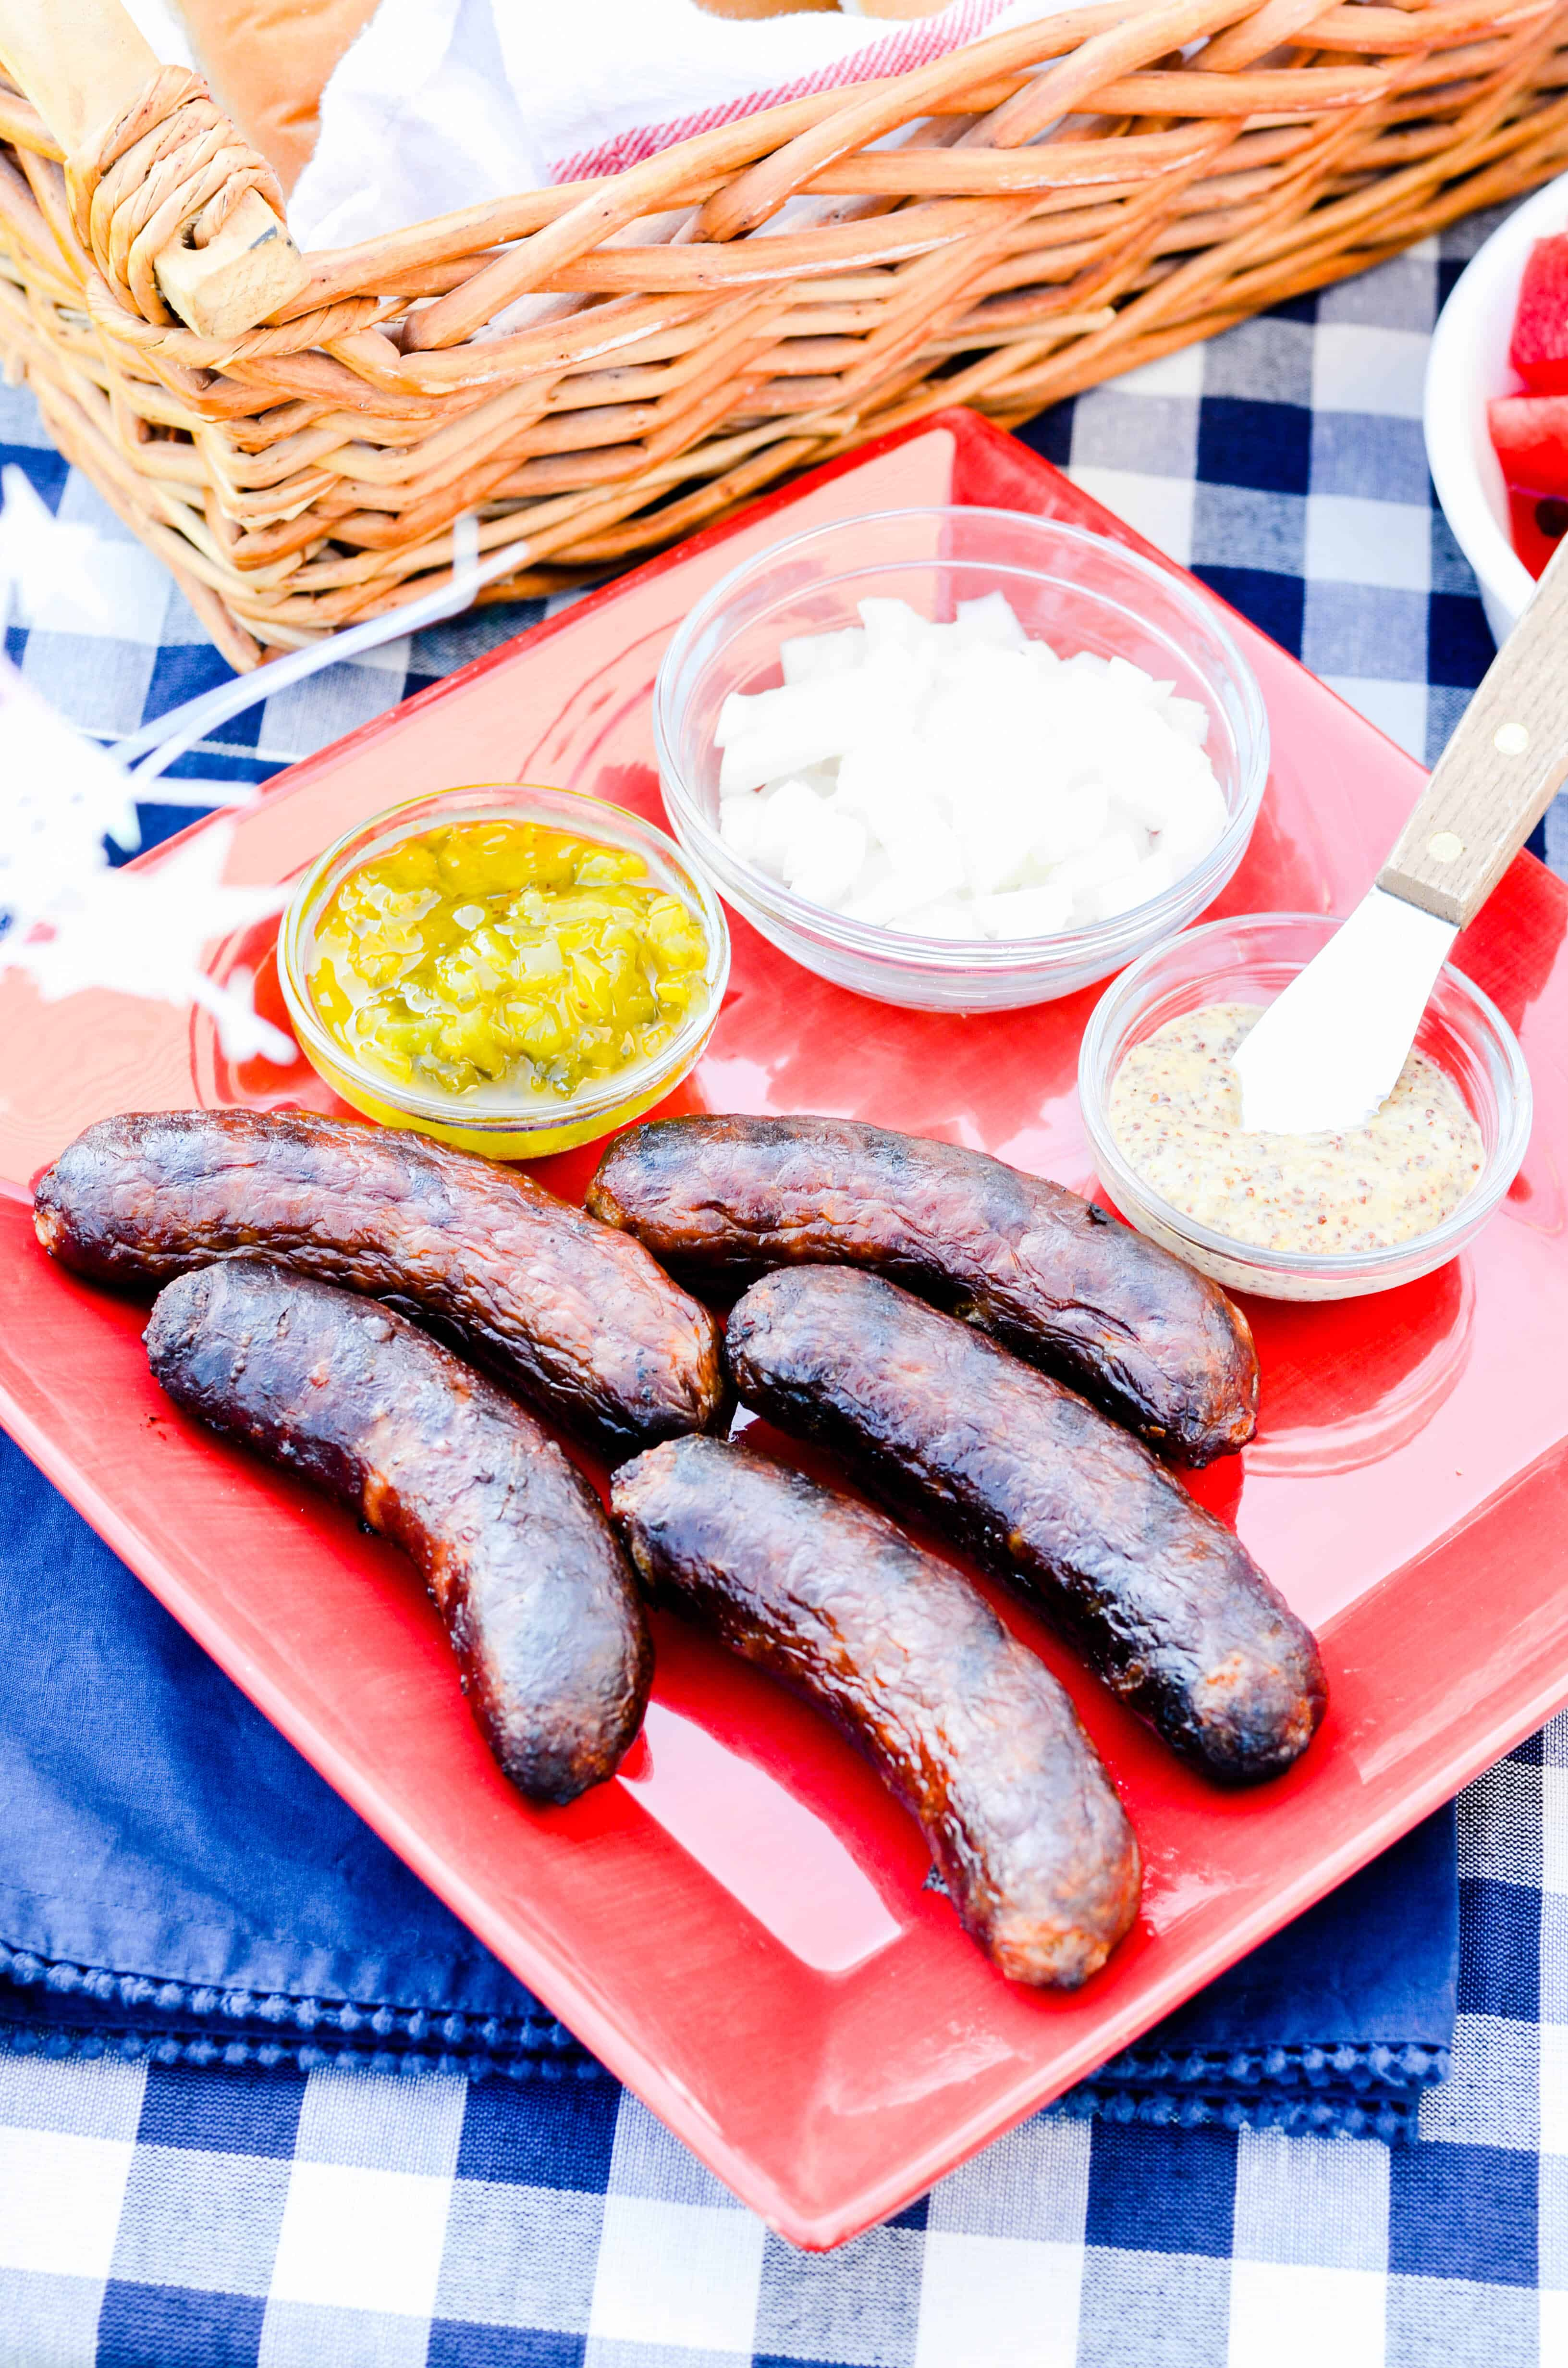 We love grilling out for the 4th of July! This year we're eating Johnsonville's Firecracker Brats and Peanut Butter Banana Pudding .